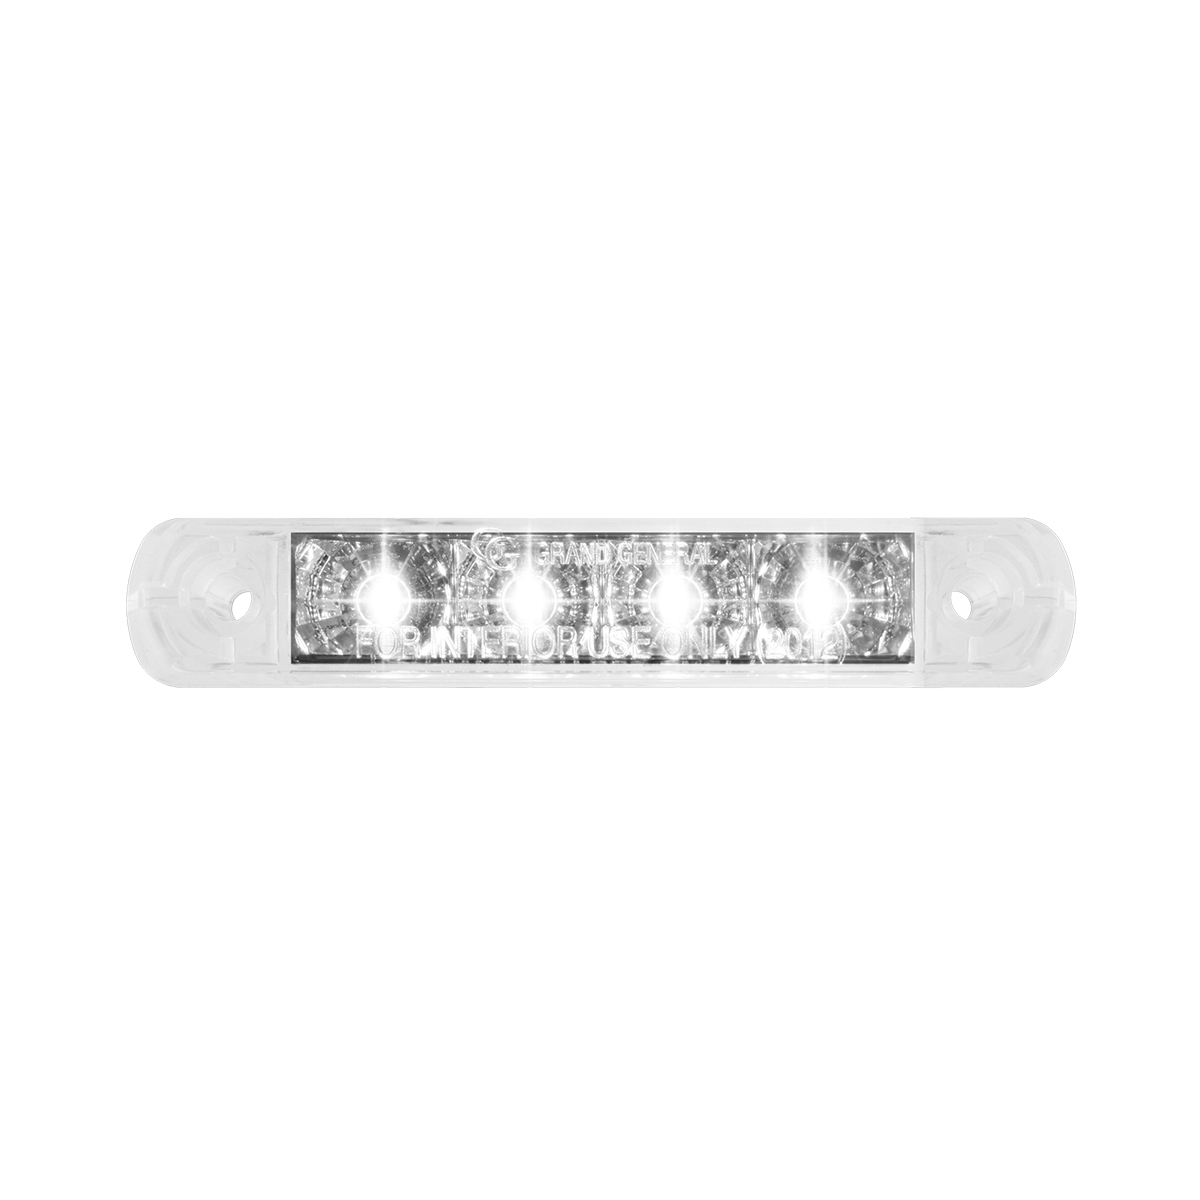 76084 Surface Mount Dual Function LED Light in White/Clear